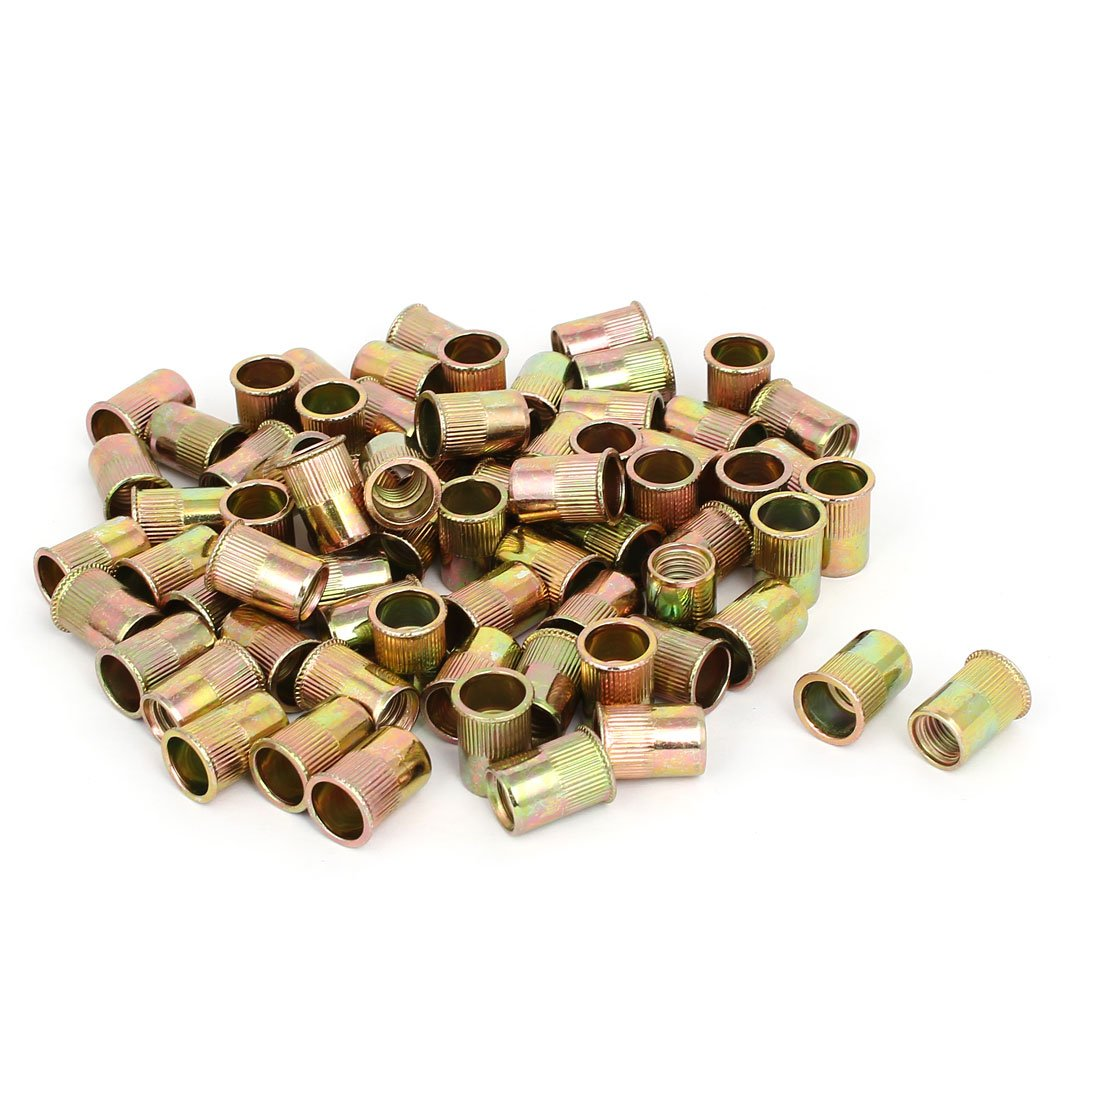 uxcell M10x19mm Reduced Head Straight Knurled Rivet Nut Insert Bronze Tone 70pcs